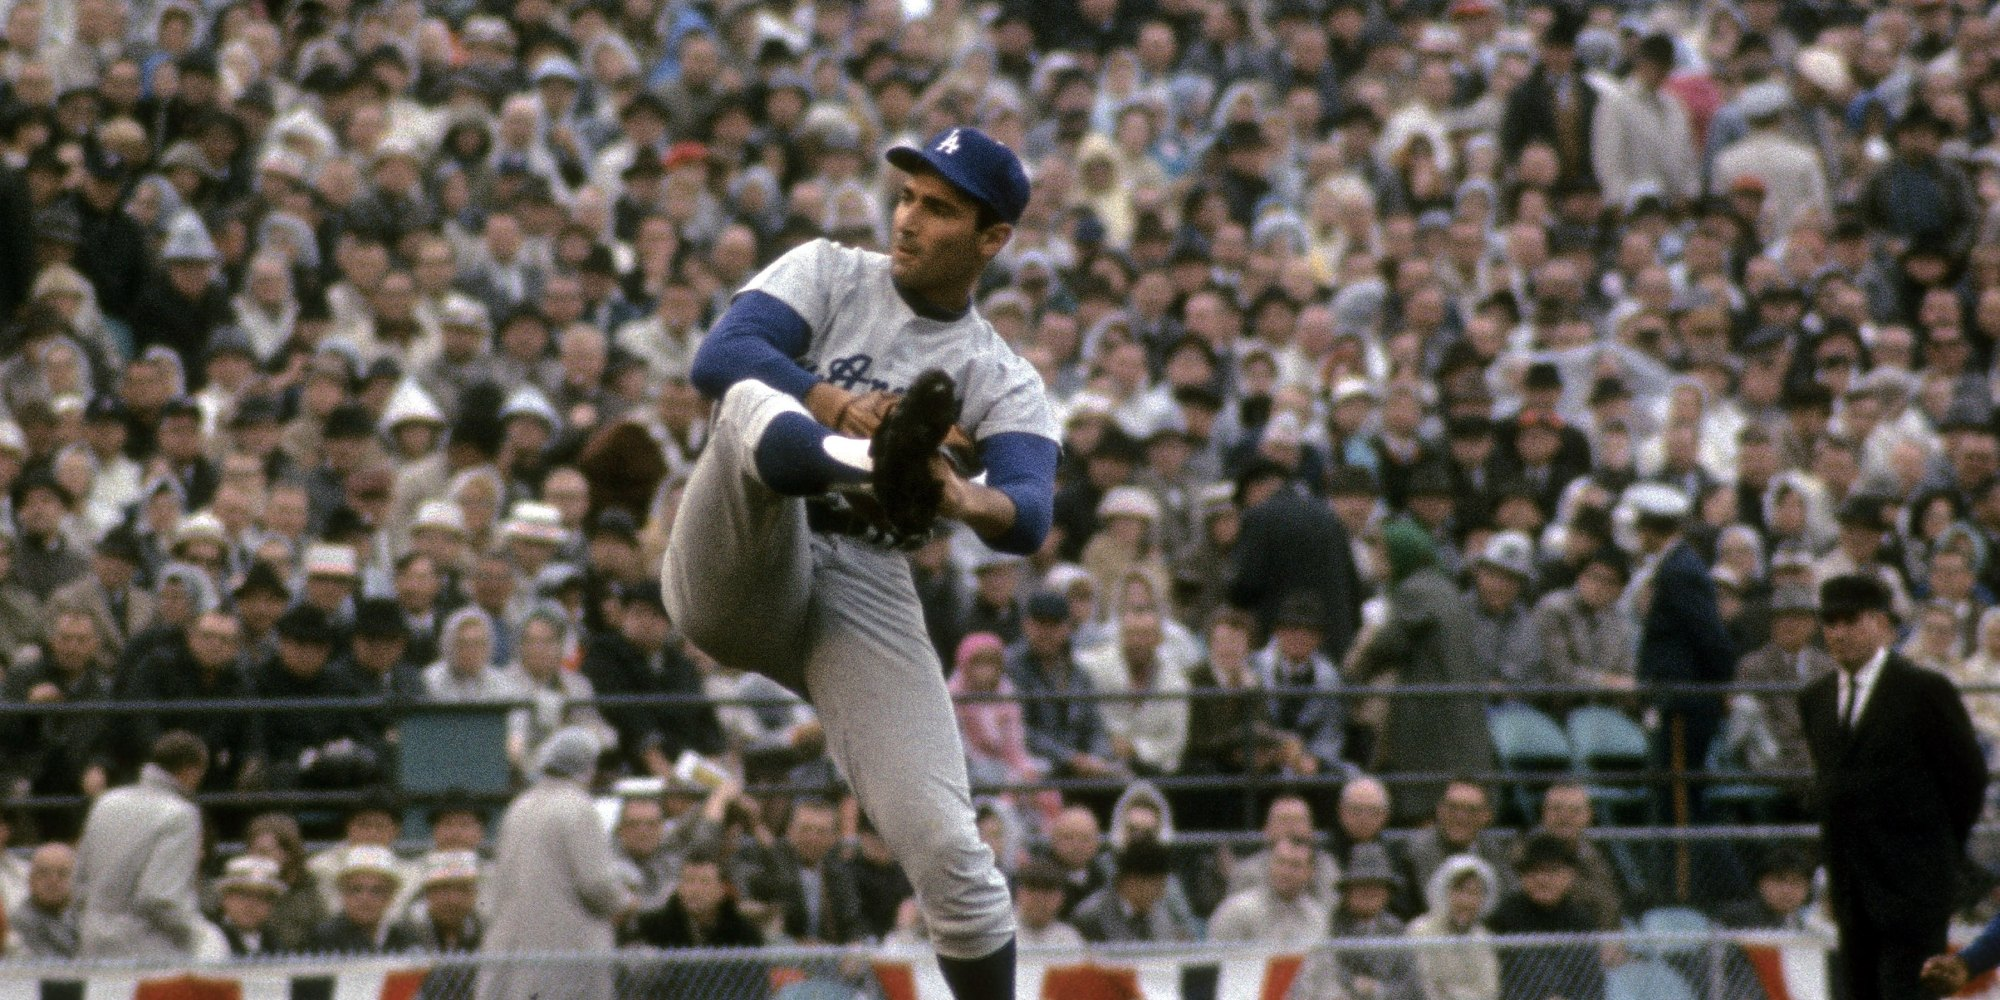 an introduction to the life of sandy koufax A left-handed pitcher, koufax played his entire 11-year career, 1955- 1966,   early life sandy koufax was born on december 30, 1935 to evelyn and jack   he went to turner field in atlanta for the introduction ceremony before game 2 of .